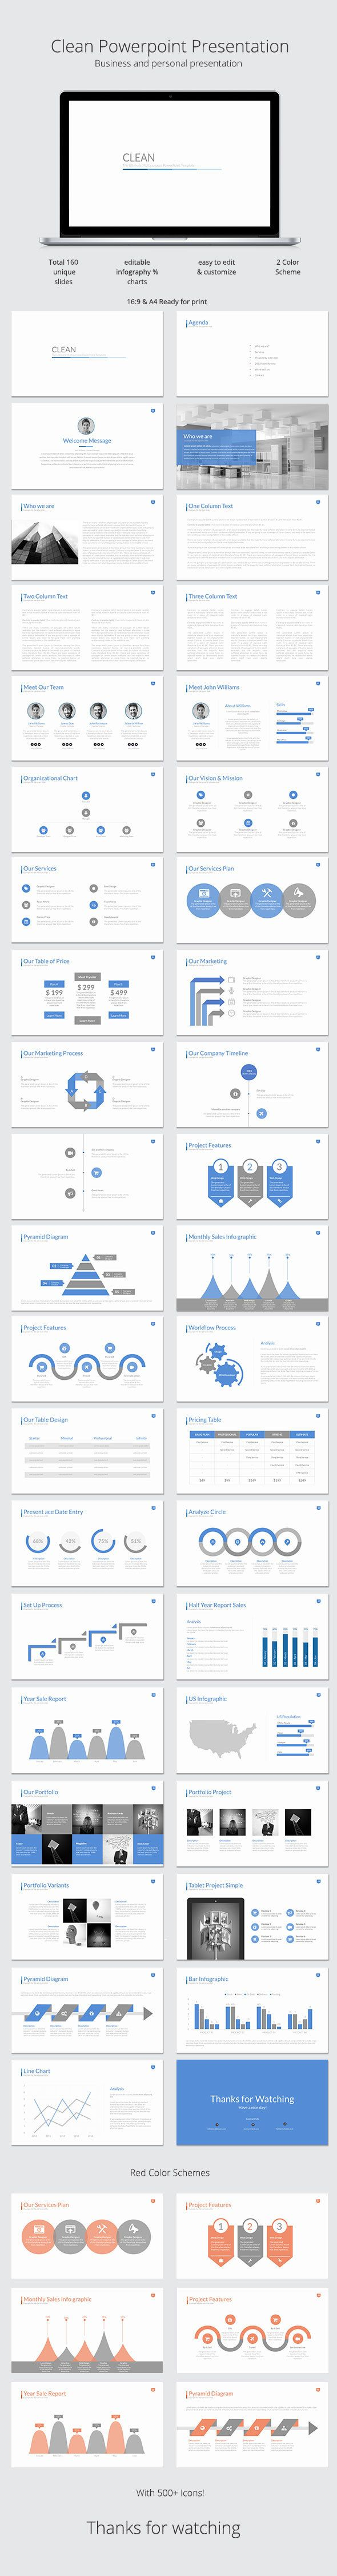 Clean Powerpoint Presentation Template #design #slides Download: http://graphicriver.net/item/clean-powerpoint-template/14314868?ref=ksioks                                                                                                                                                                                 More